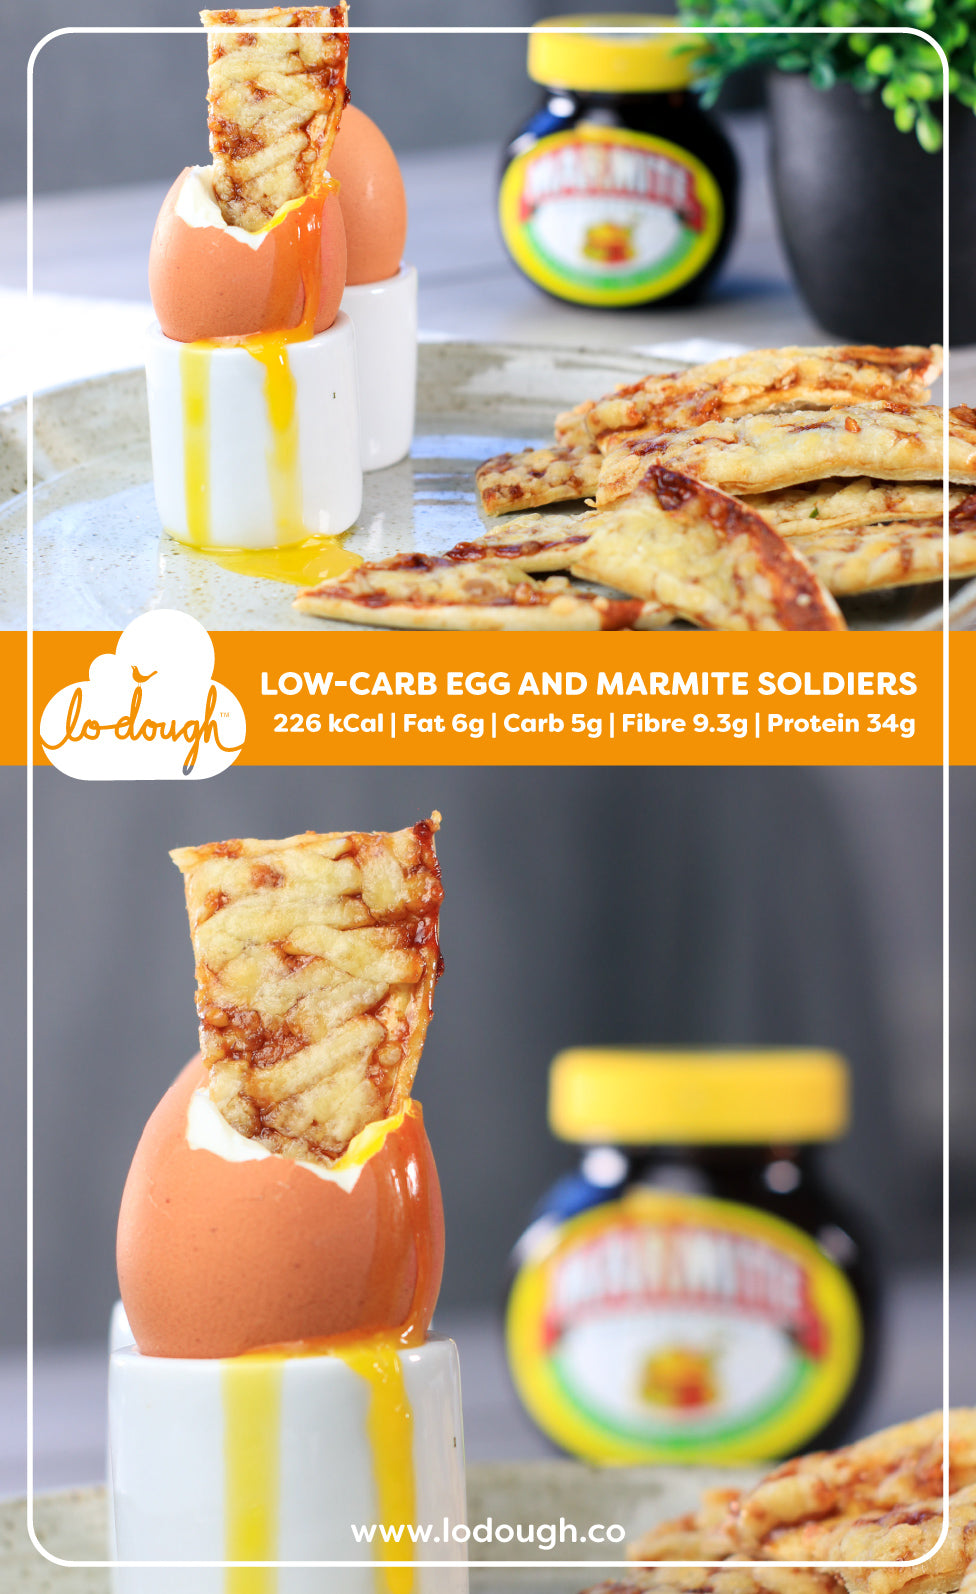 Low-Carb Egg And Marmite Soldiers